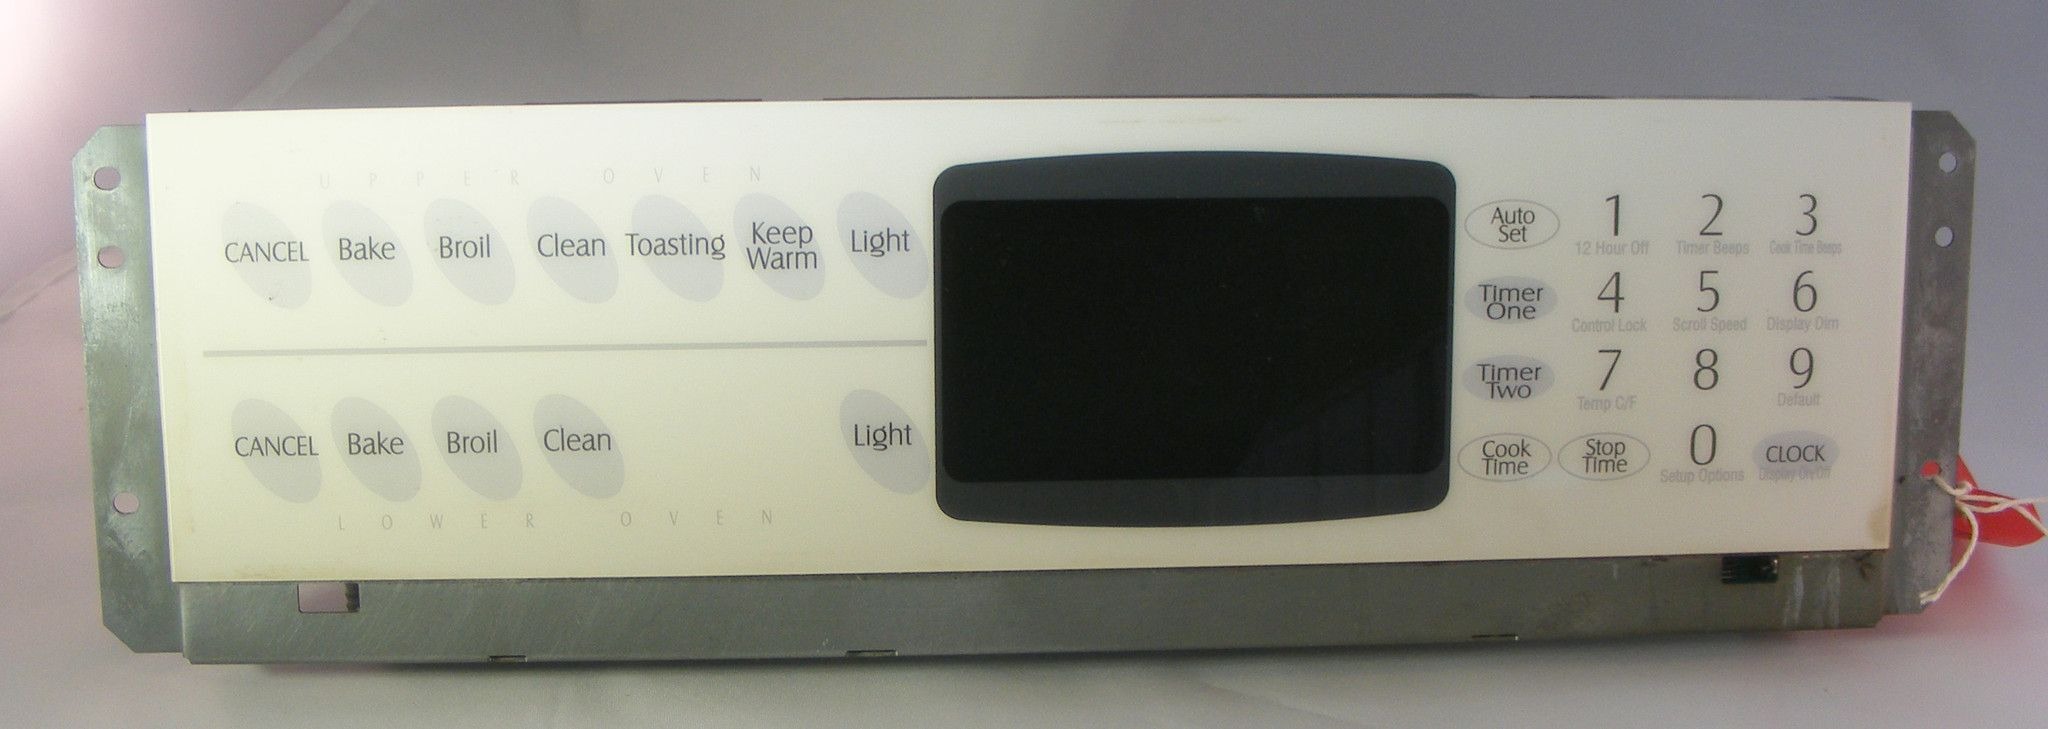 5701m403 60 Maytag Range Electronic Oven Control Parts